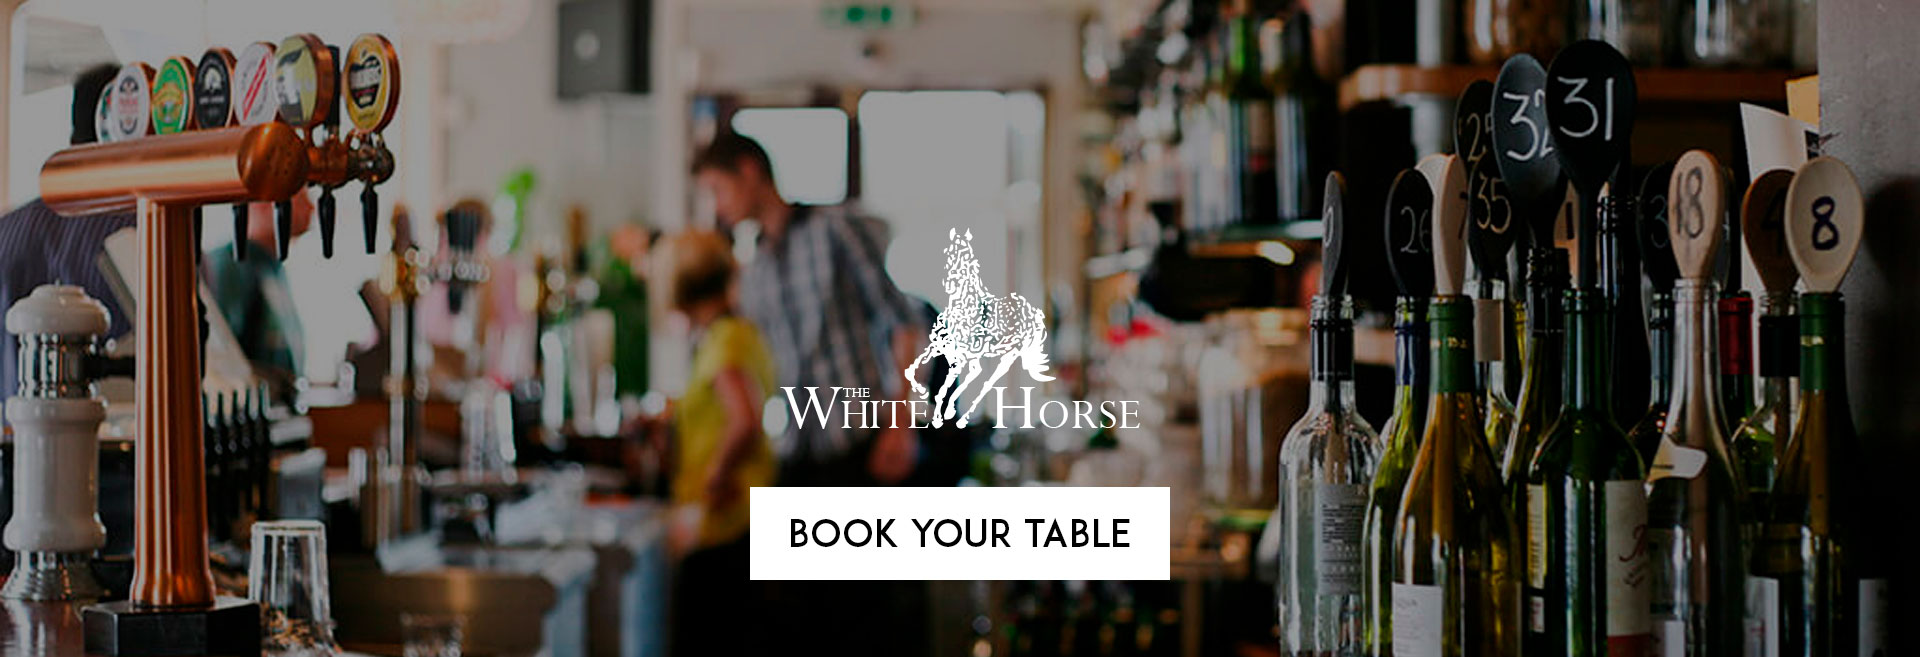 Book Your Table at The White Horse Hotel